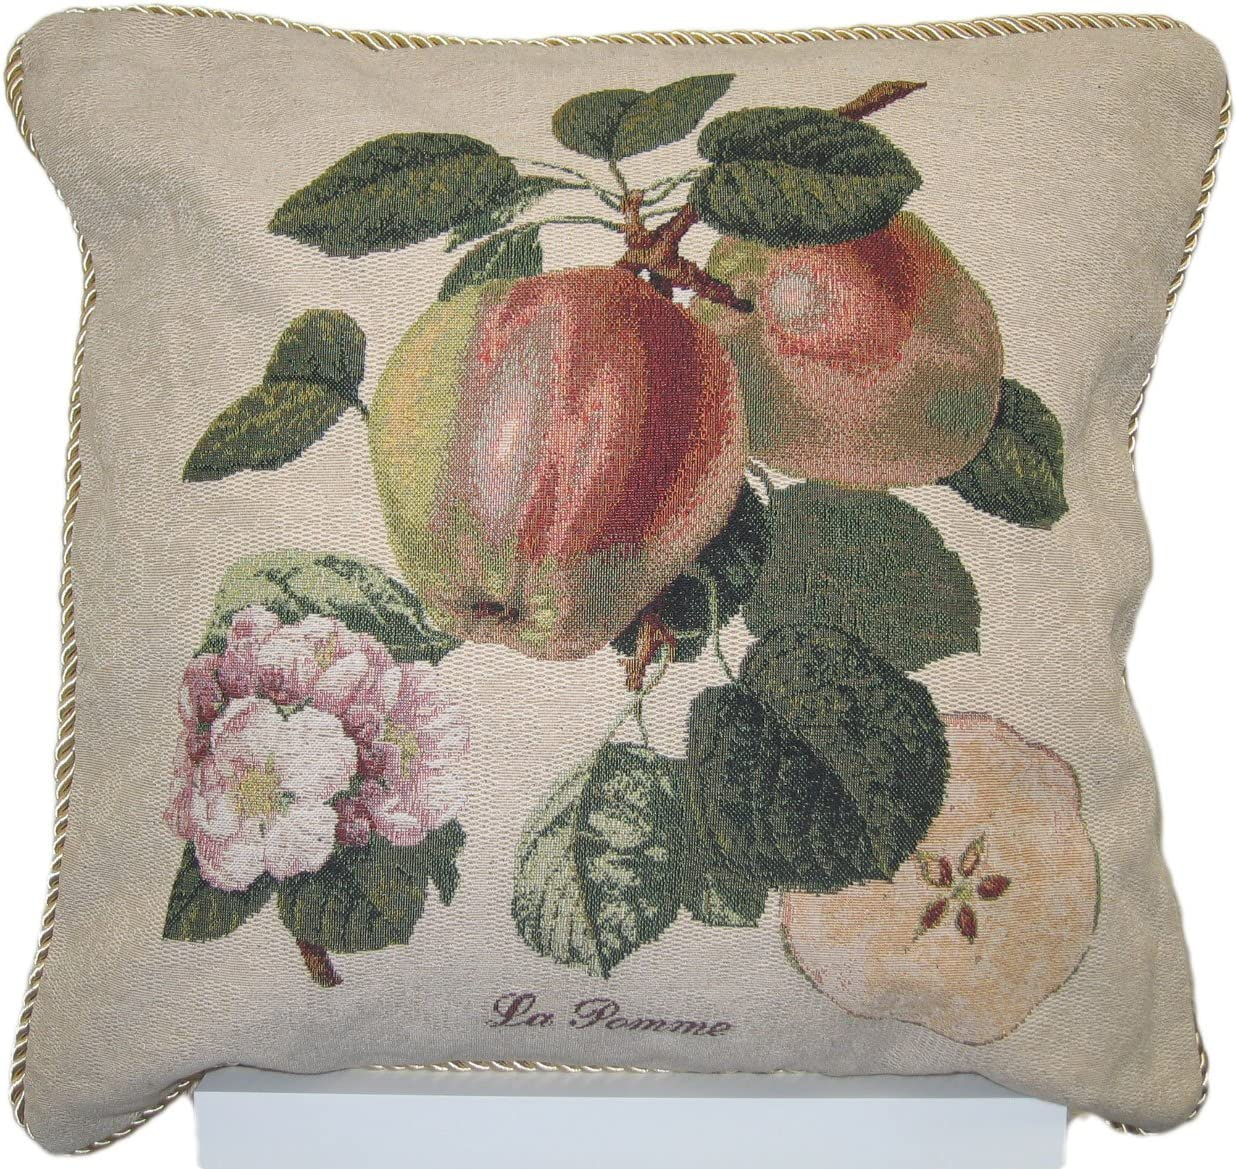 DaDa Bedding Hand-Crafted Woven Splendor of Apple Decorative Throw Pillow, 18 Inches